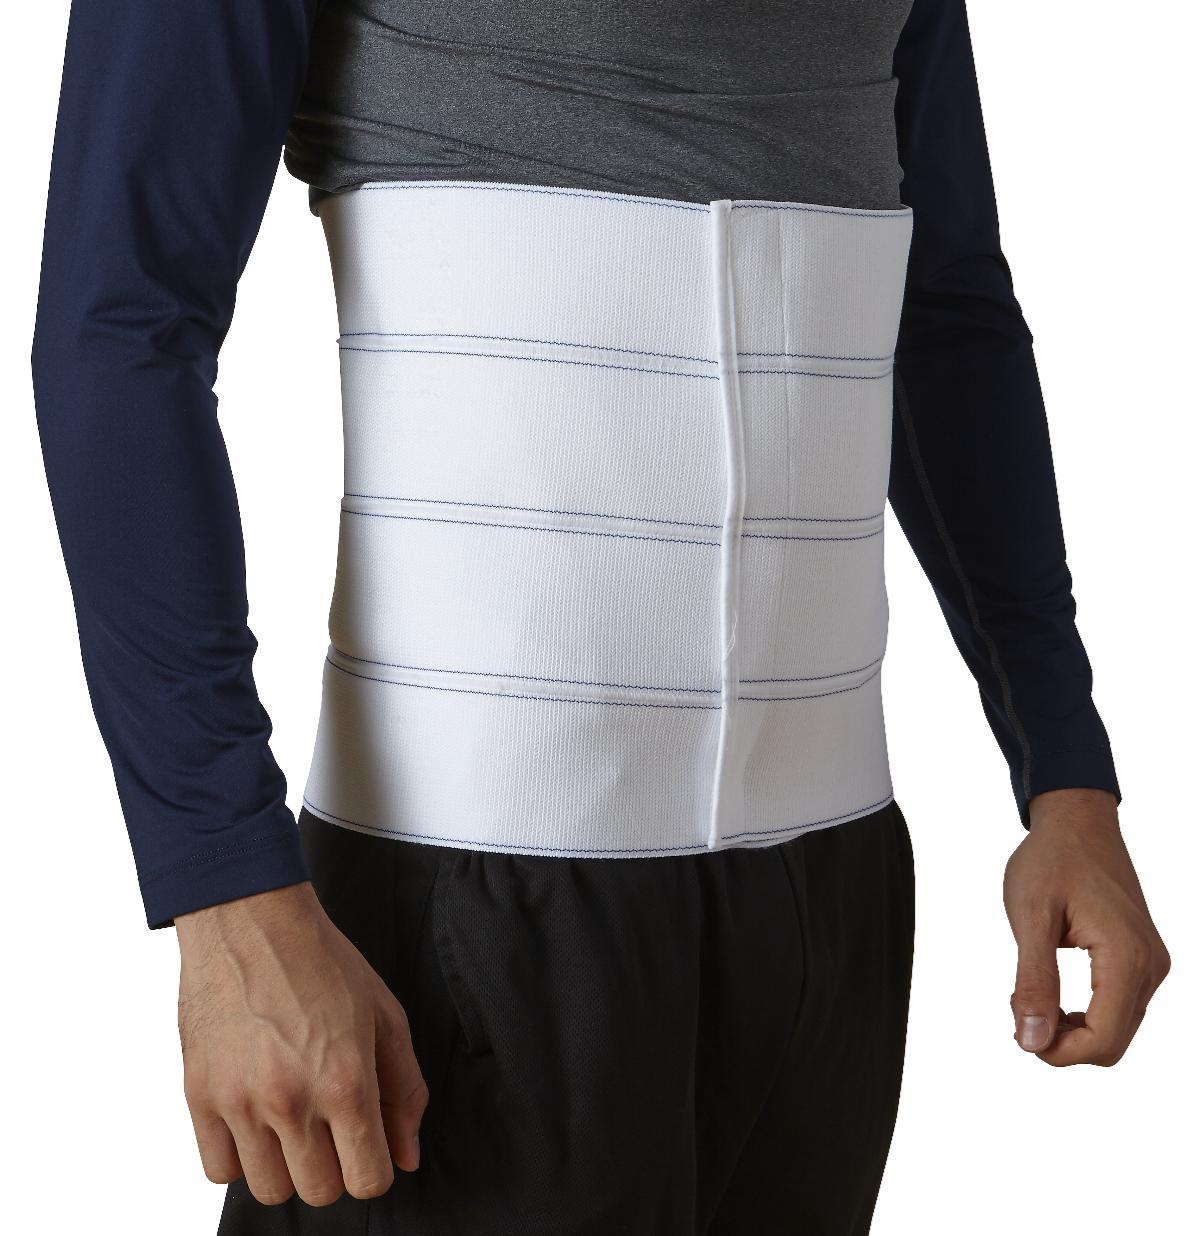 Binder Abdominal12 4-panel Std Lg/xl - Ort21300lxl - Patient Therapy Rehabilitation Orthopedic Soft Goods Abdominal Binders Ribs Belts ORT21300LXL